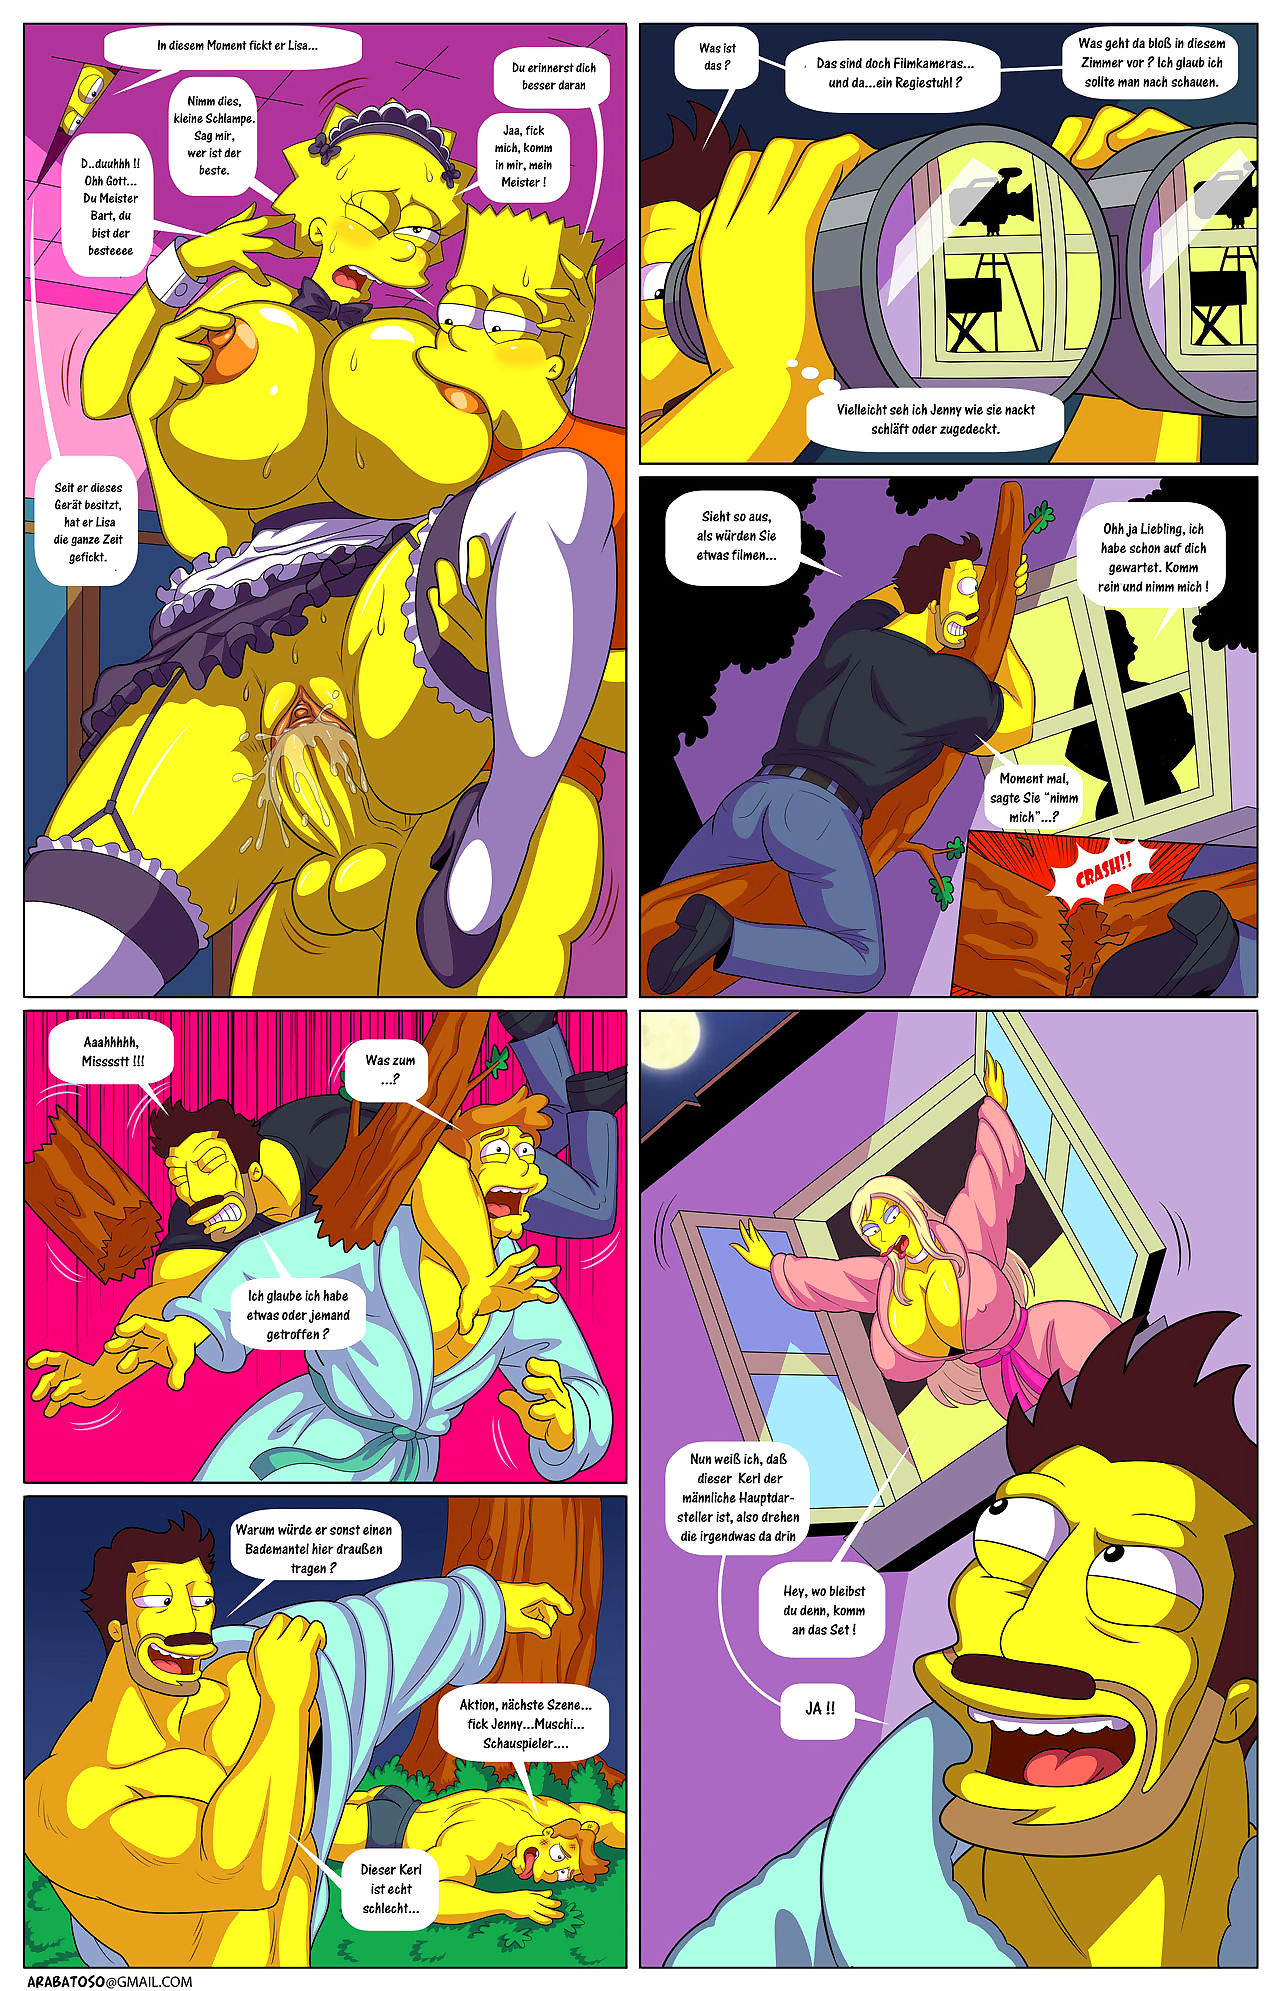 Arabatos - Darrens Stake - Slay rub elbows with Simpsons - accouterment 3